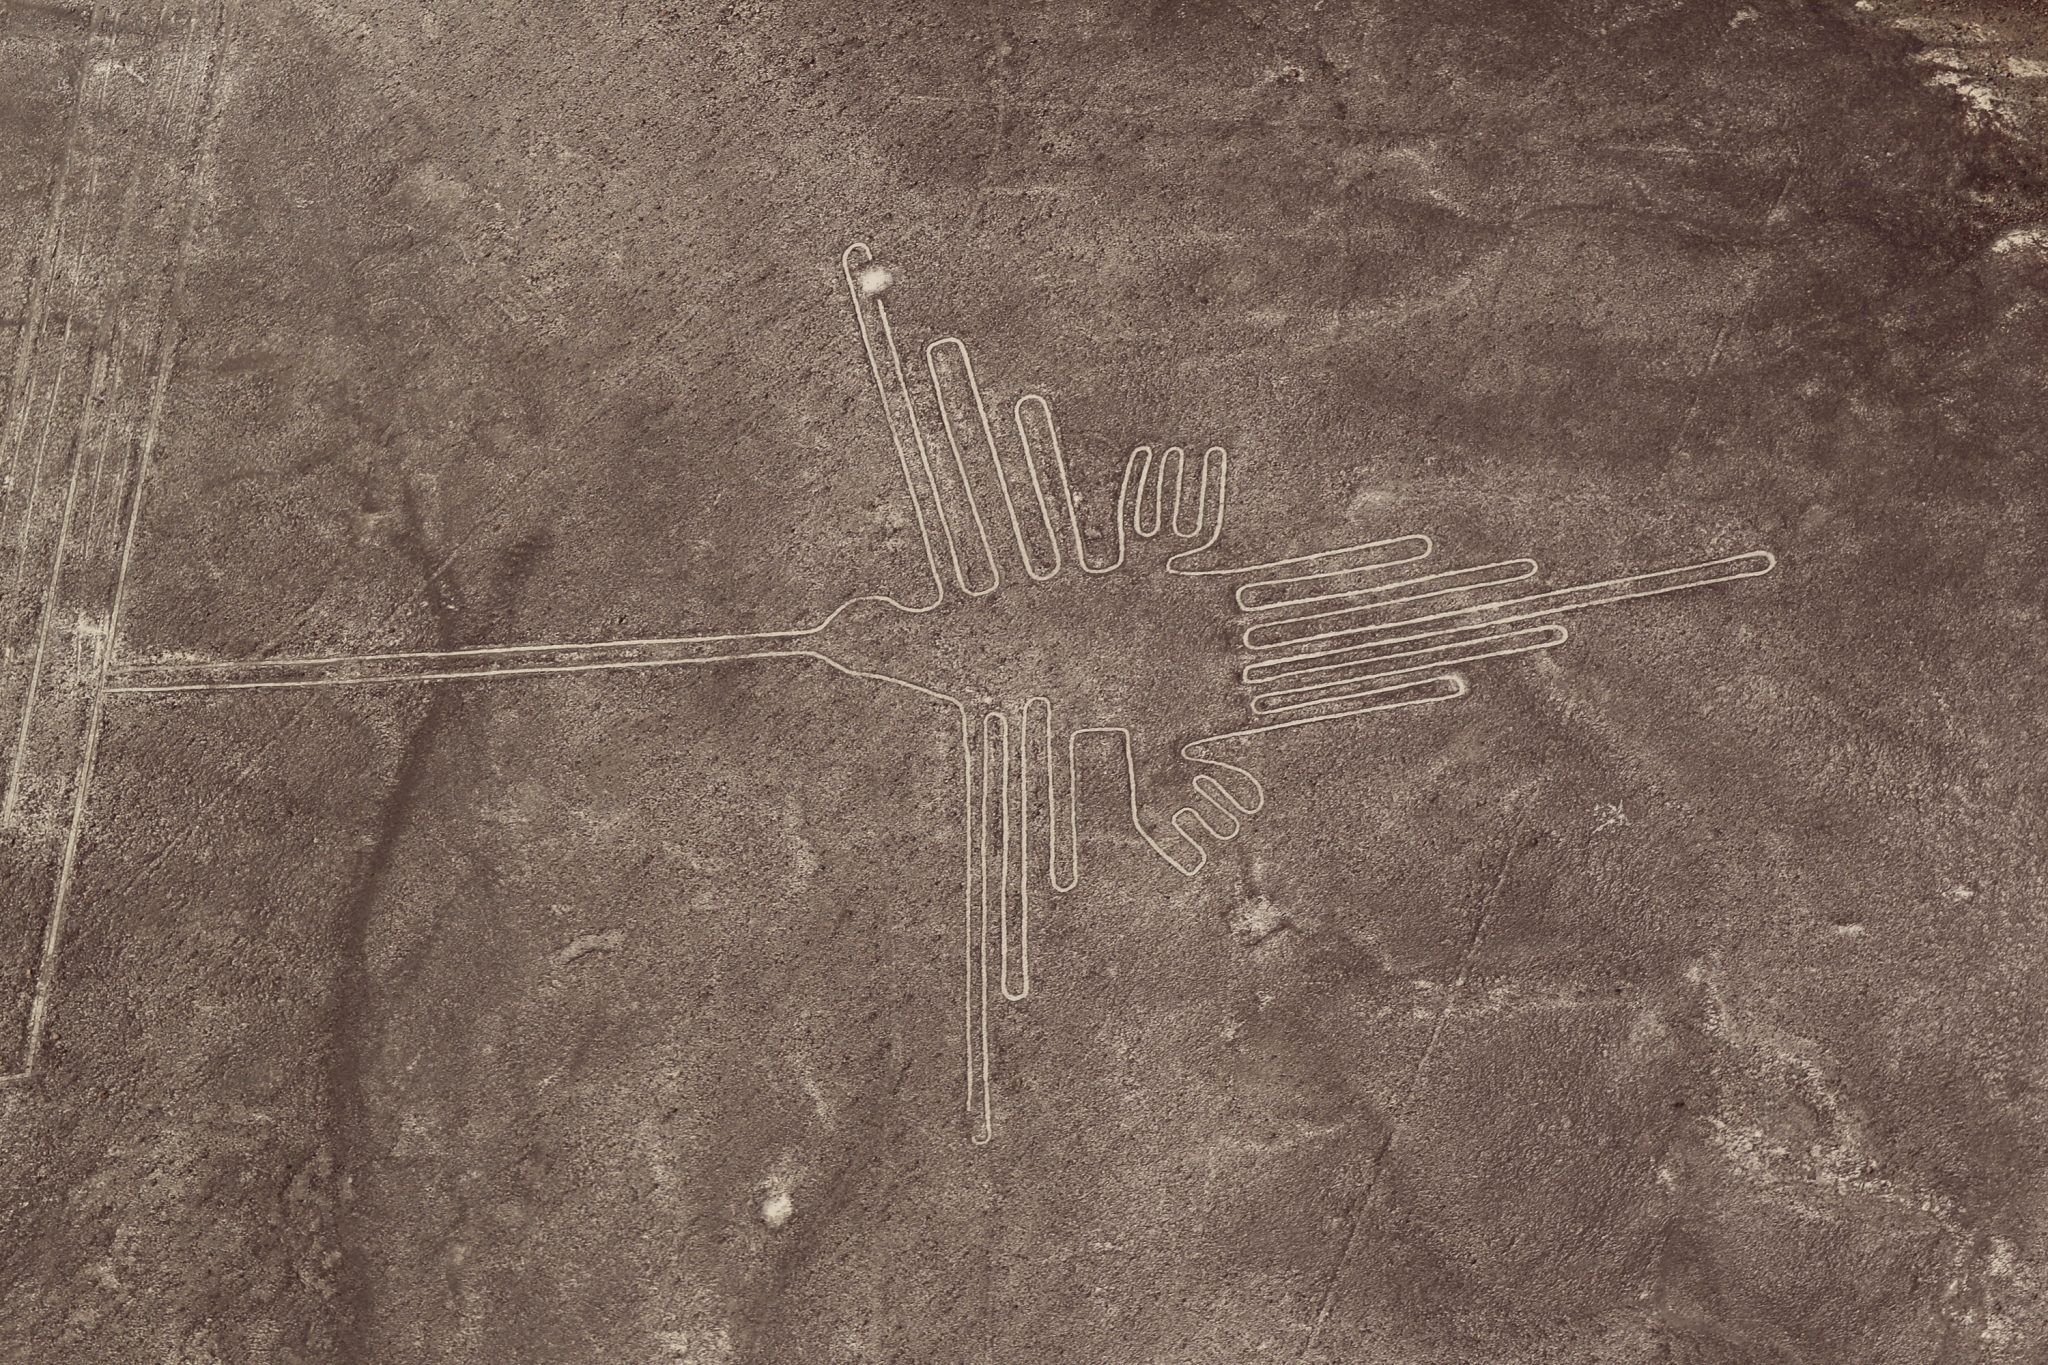 Aerial shot of the Nazca Lines in Nazca, Peru.